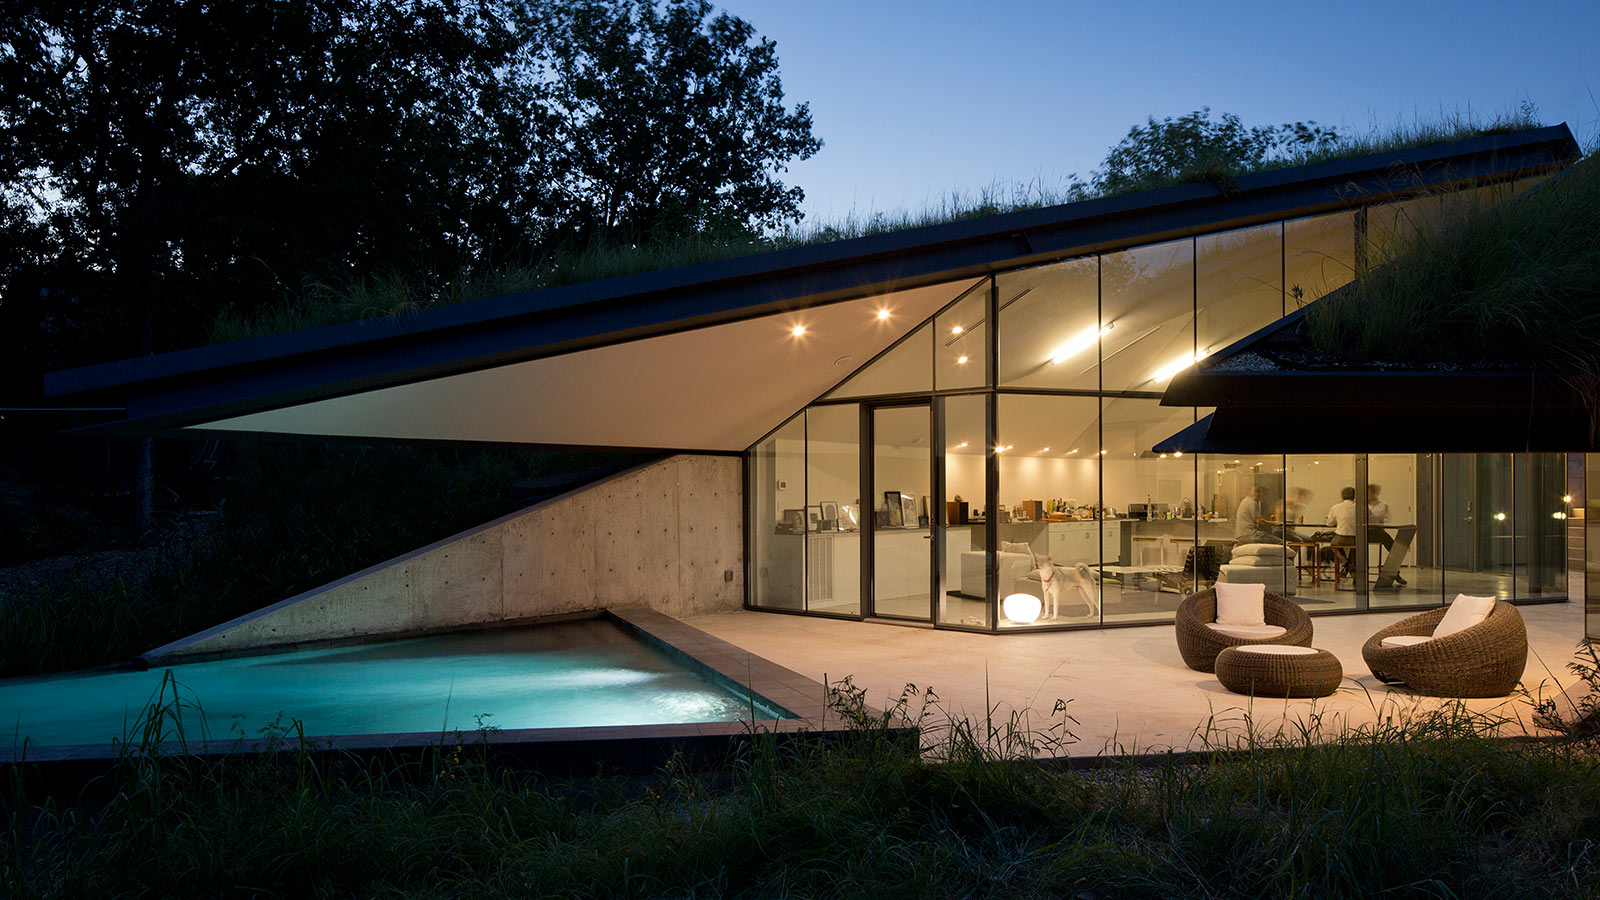 Futuristic House Endearing Edgeland Residence A Futuristic House With A Smart Pool Fit For A Inspiration